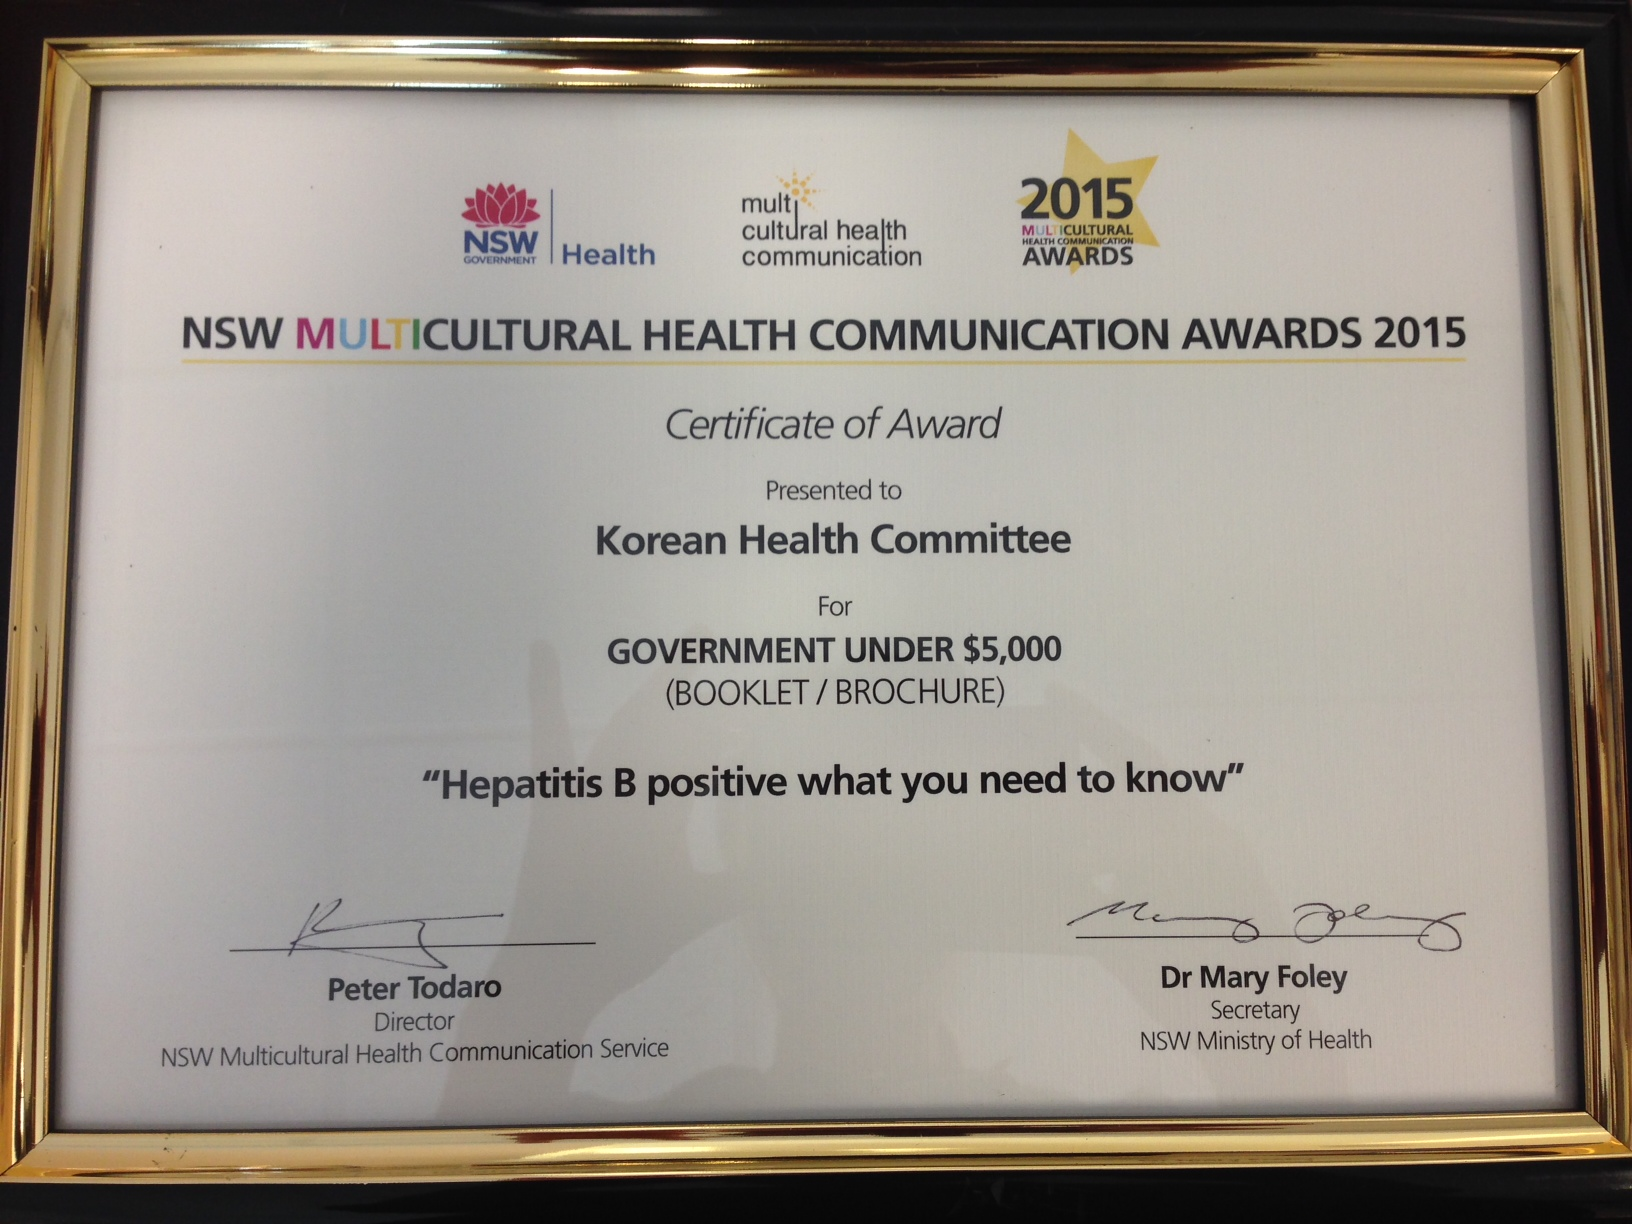 2015 NSW Multicultural Health Communication Award - Korean Health Committee